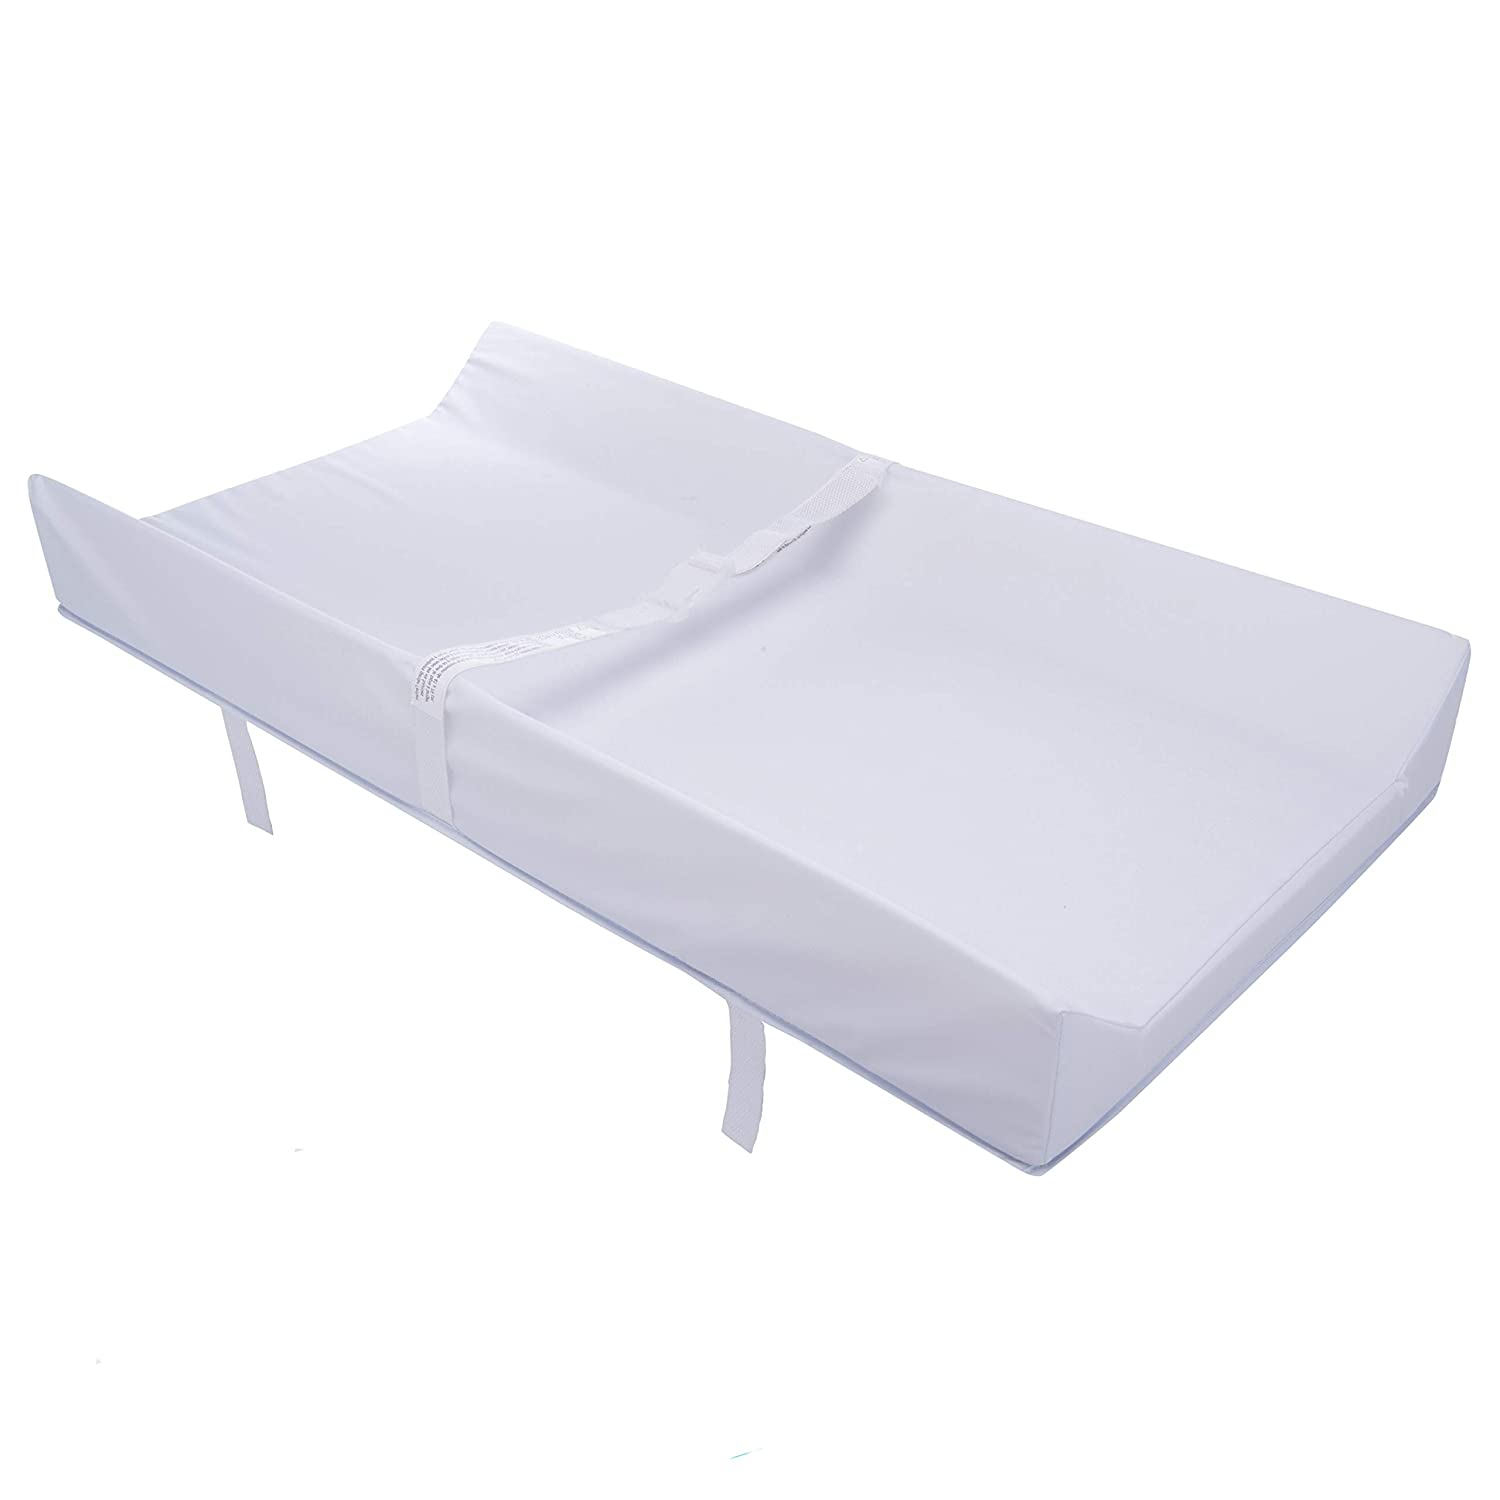 Top 10 Best Portable Changing Pad (2020 Reviews & Buying Guide) 6